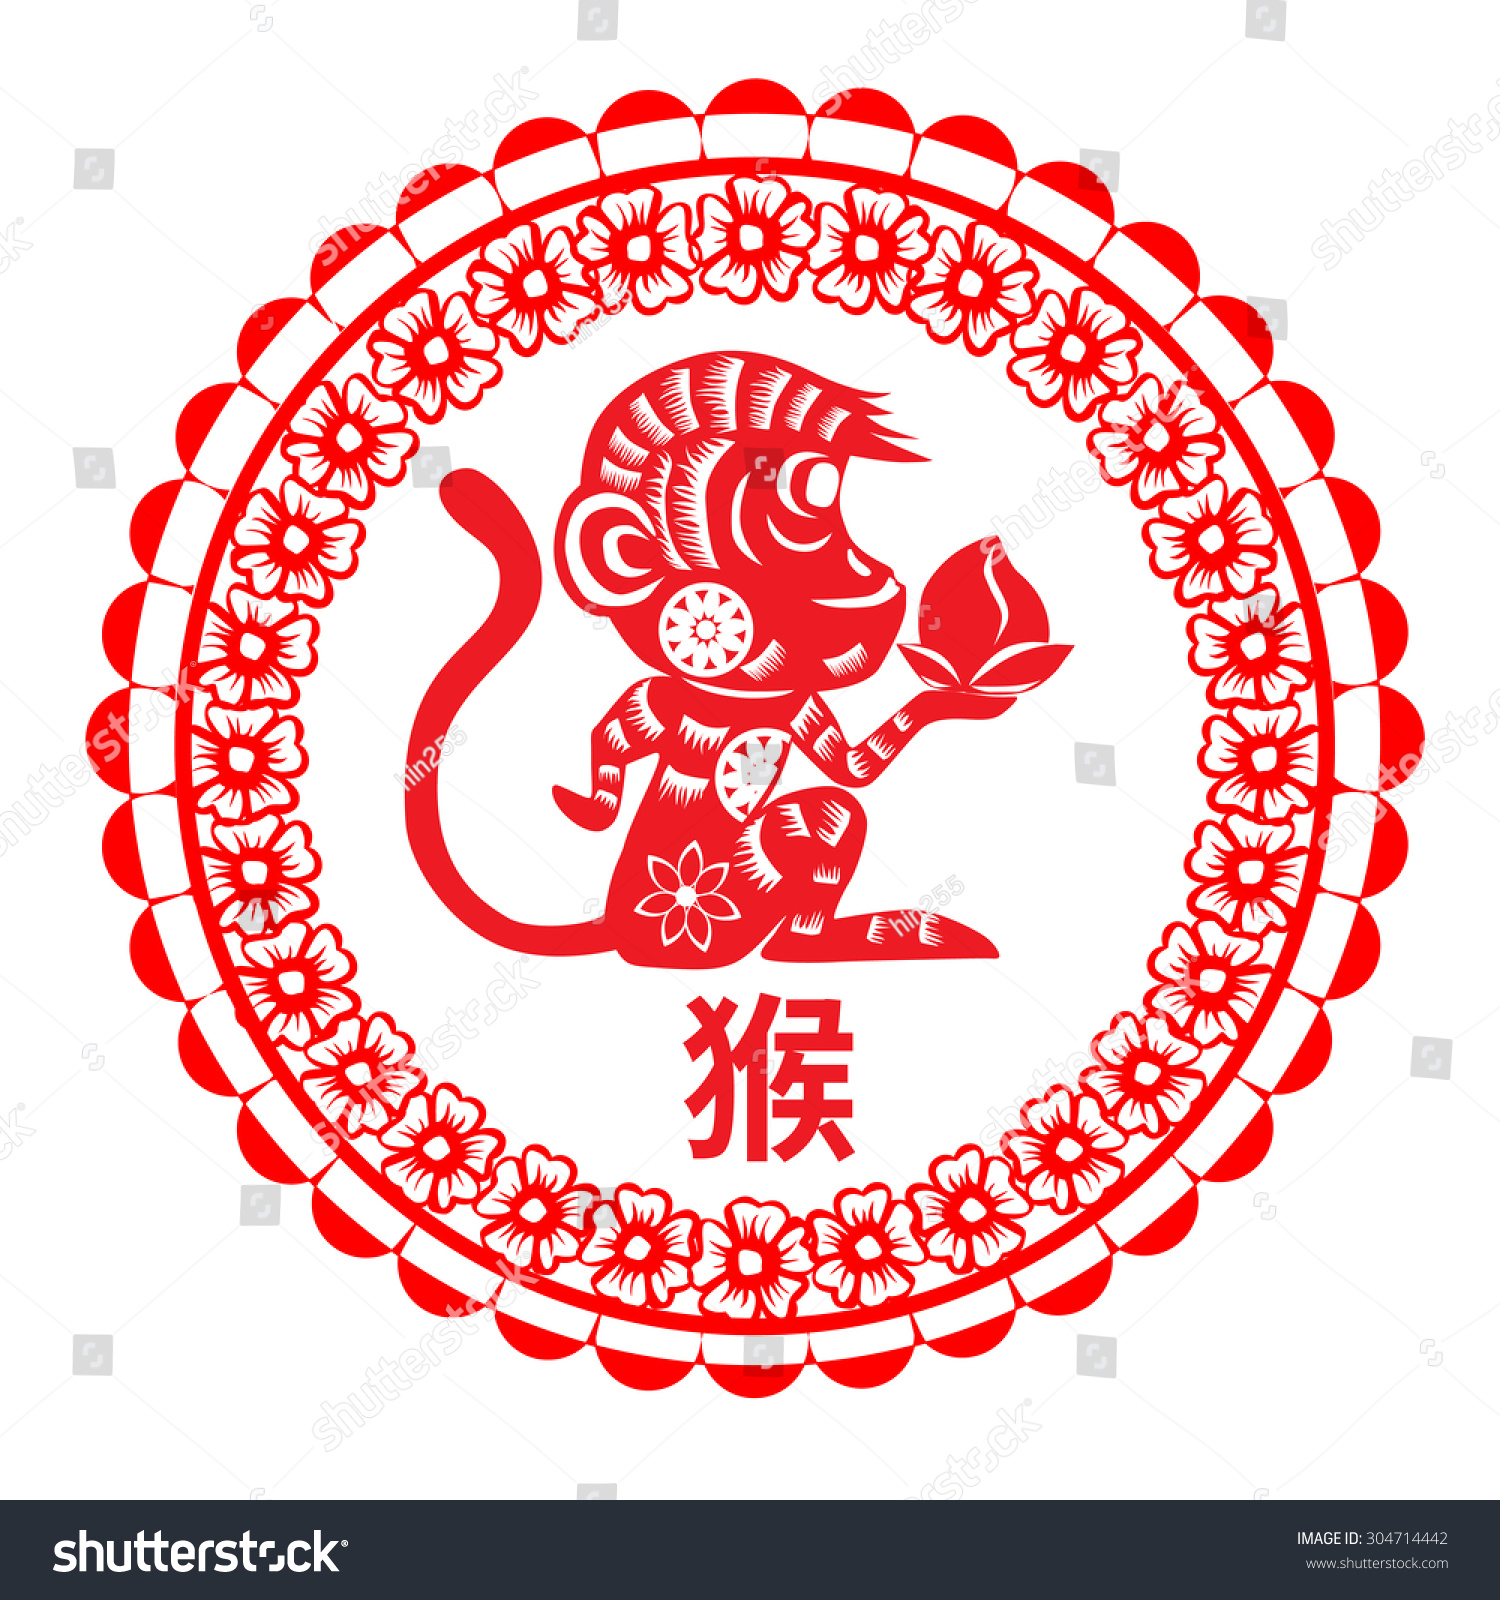 Happy Chinese New Year 2016 Chinese Stock Vector 304714442 ...